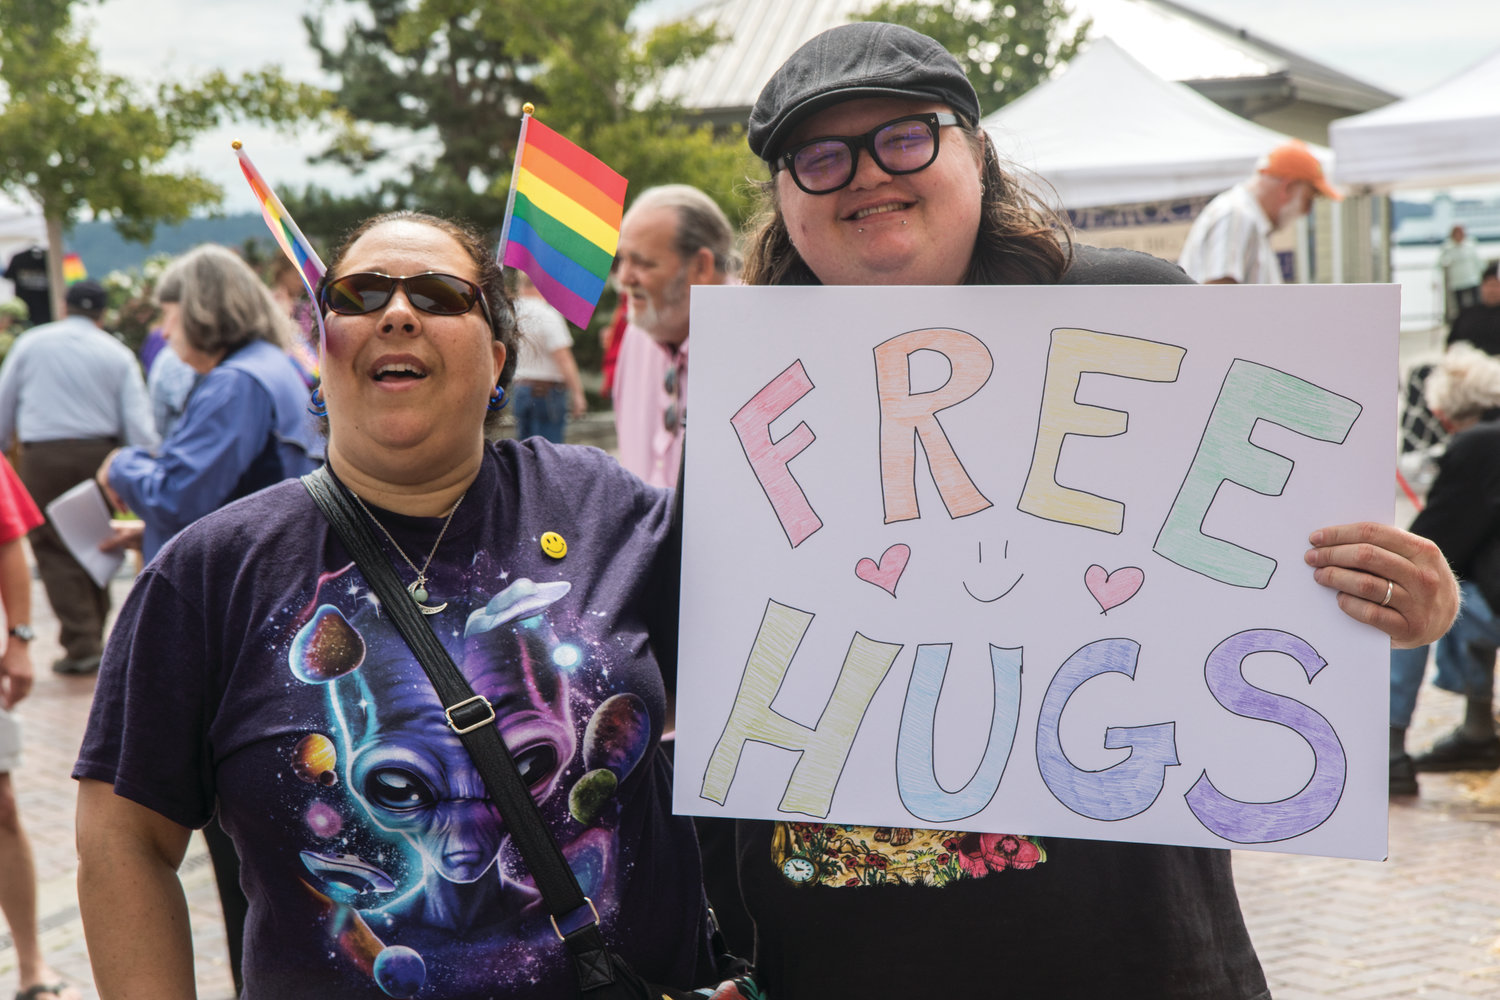 Ashlee Beach and Nina Slagle offer free hugs at Pride Fest in Port Townsend on July 13.